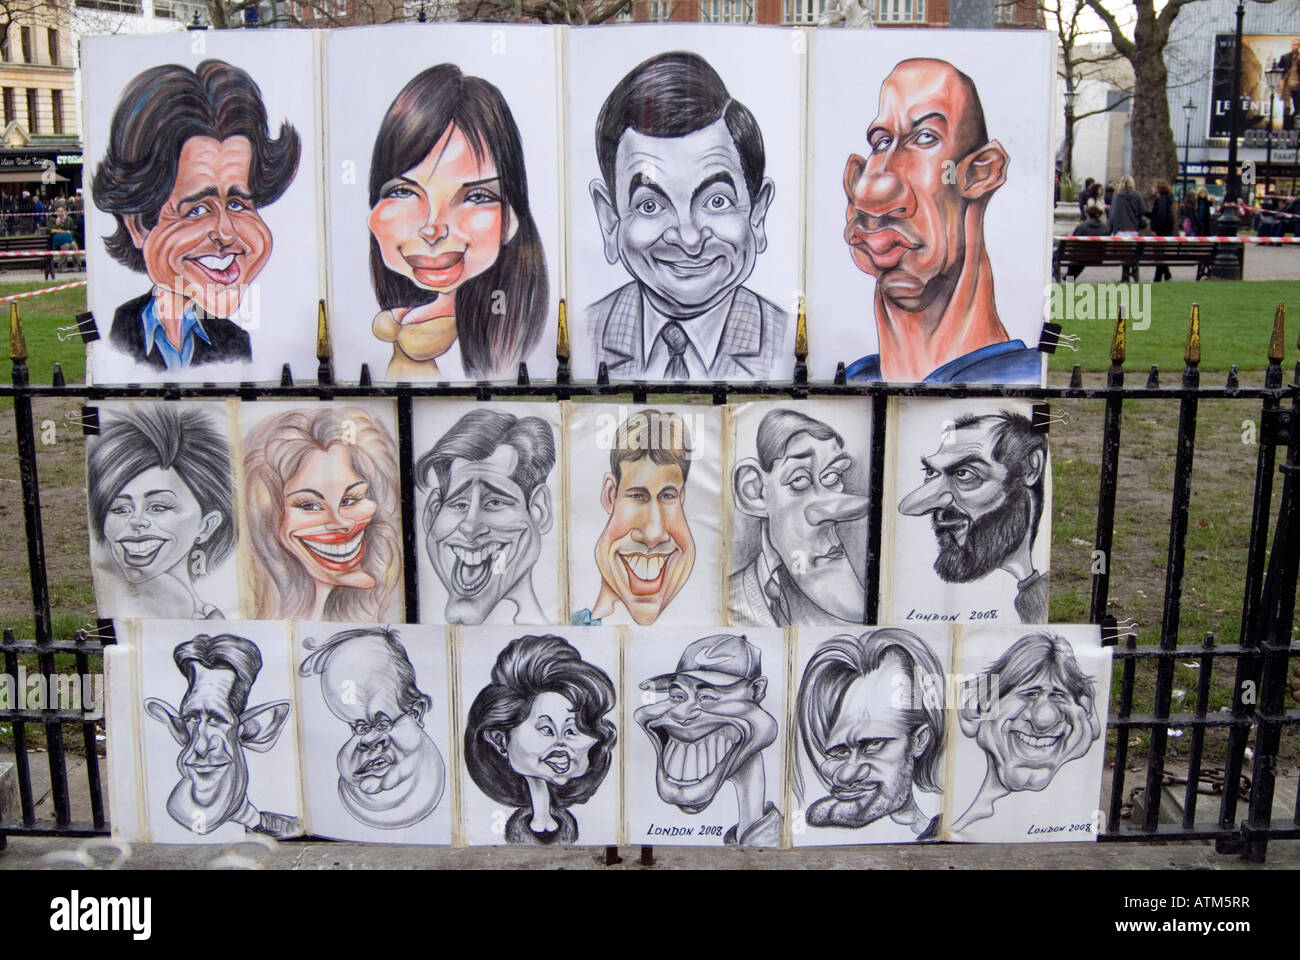 Caricatures of famous people in Leicester Square London England UK - Stock Image